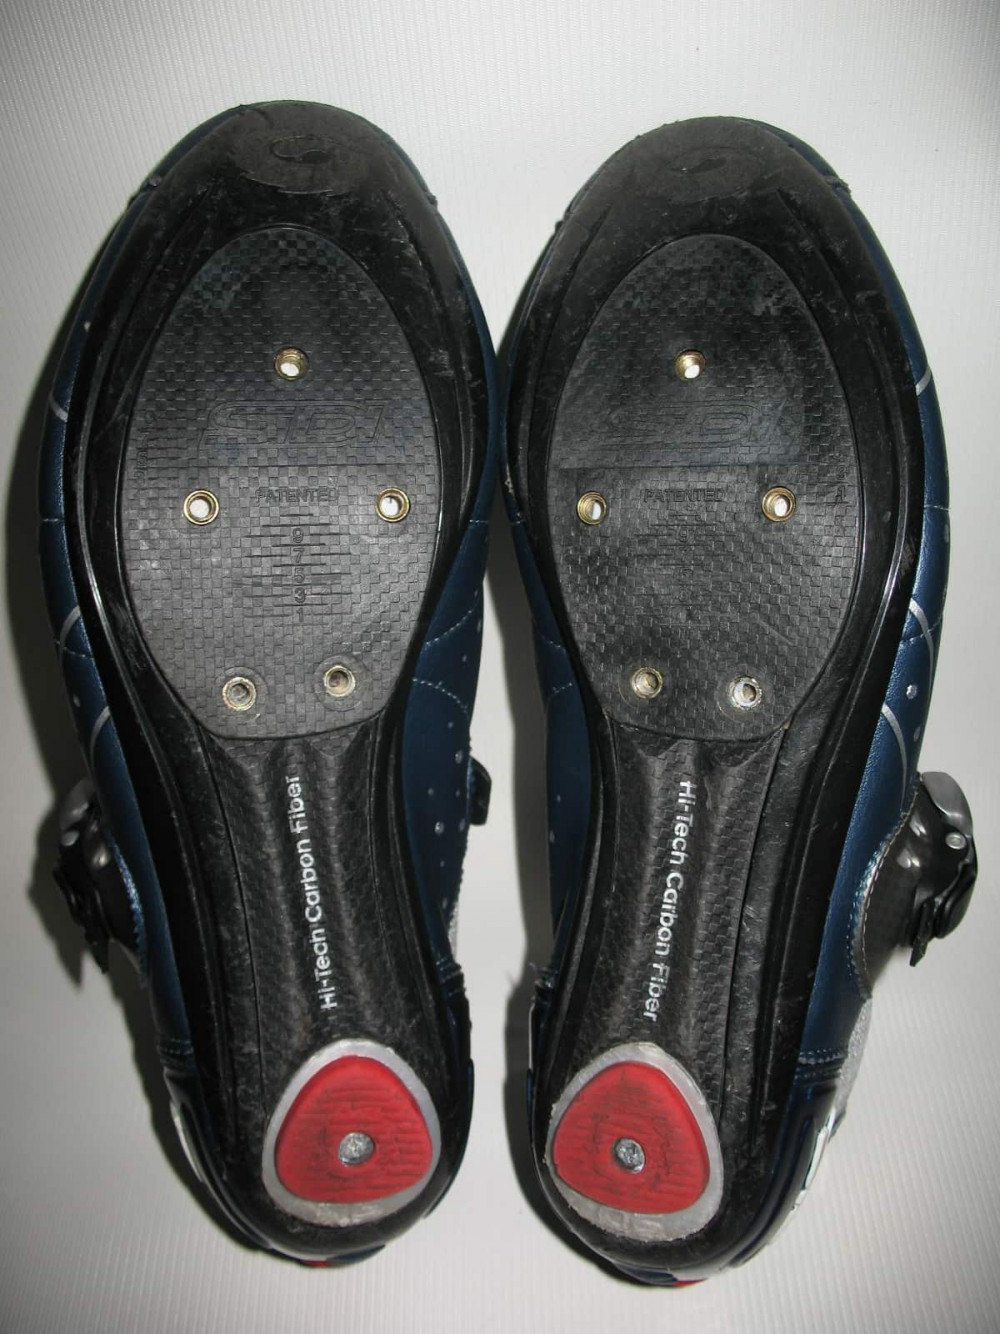 Велотуфли SIDI genius 5.5 carbon road shoes (размер EU42,5(на стопу 265mm)) - 5